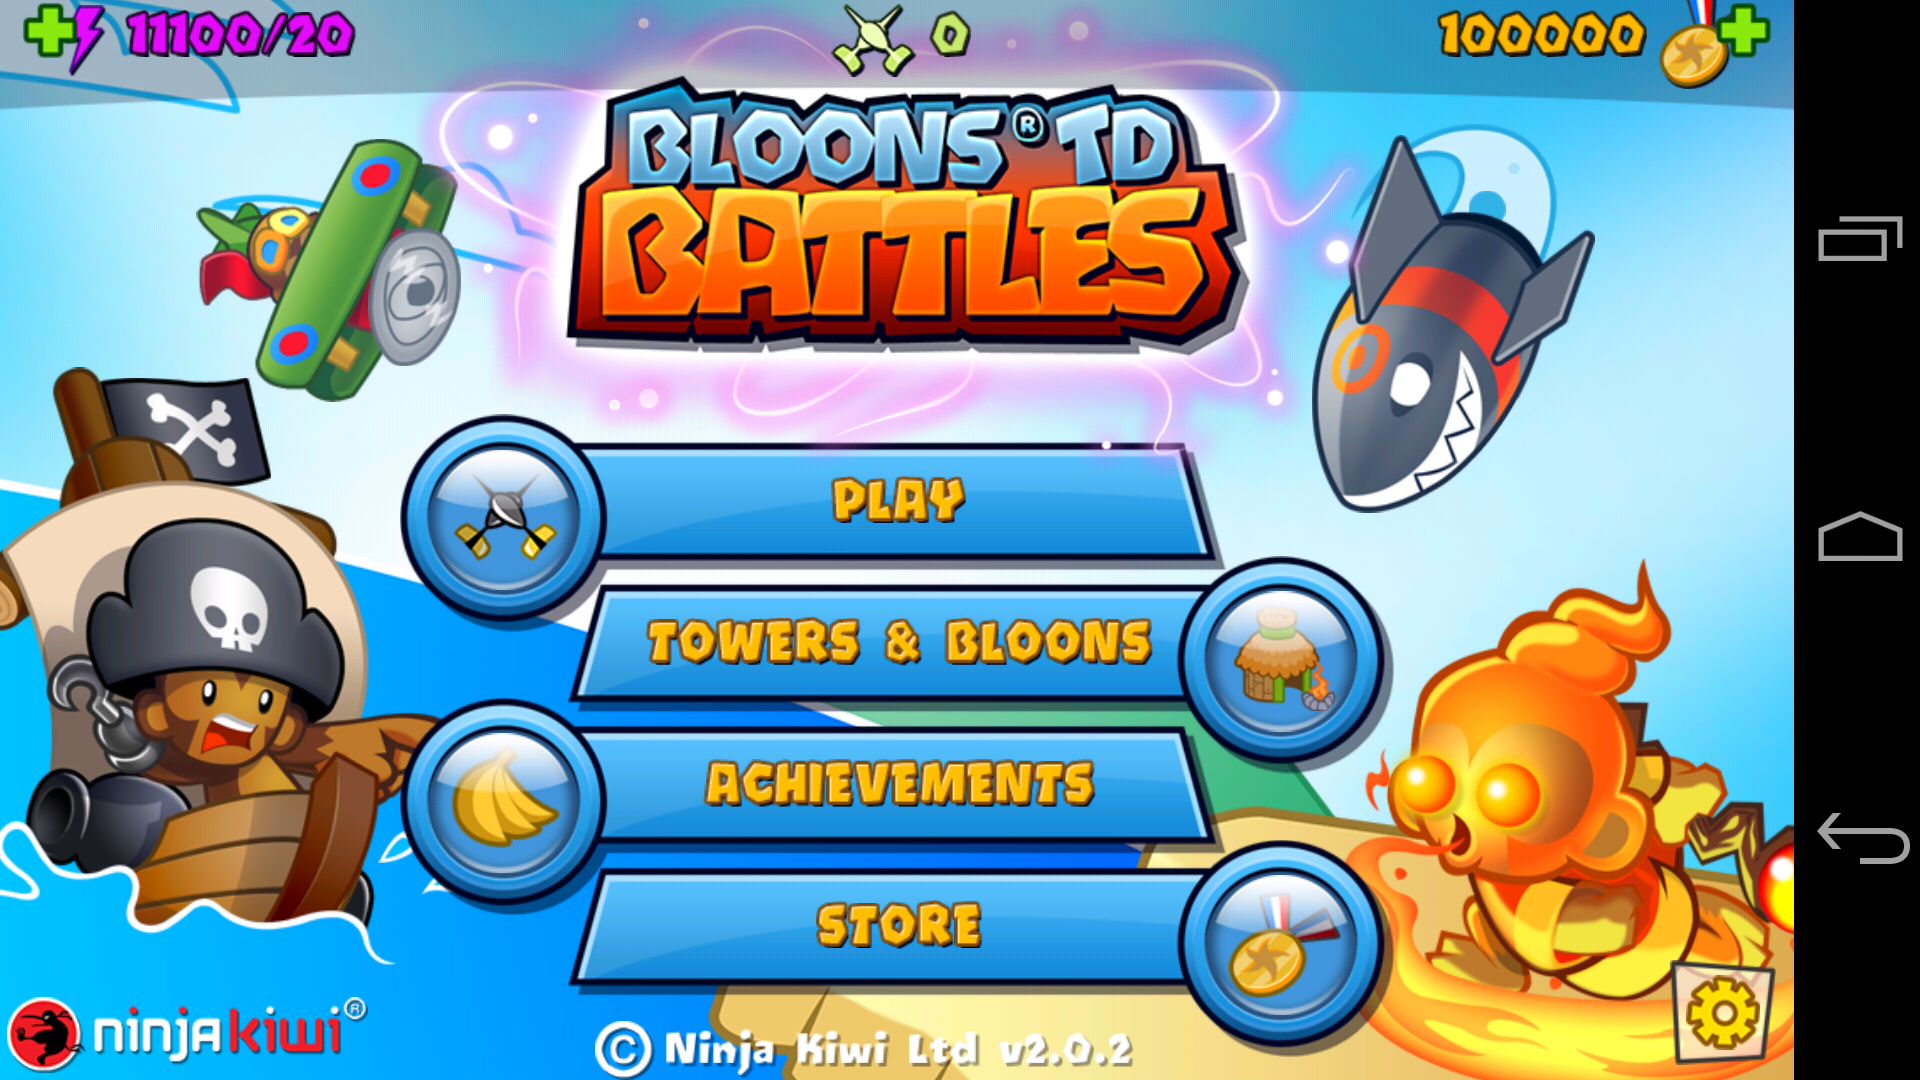 Balloons TD battles 2.0.2 Mod Apk, With Unlimited Energy and Money.